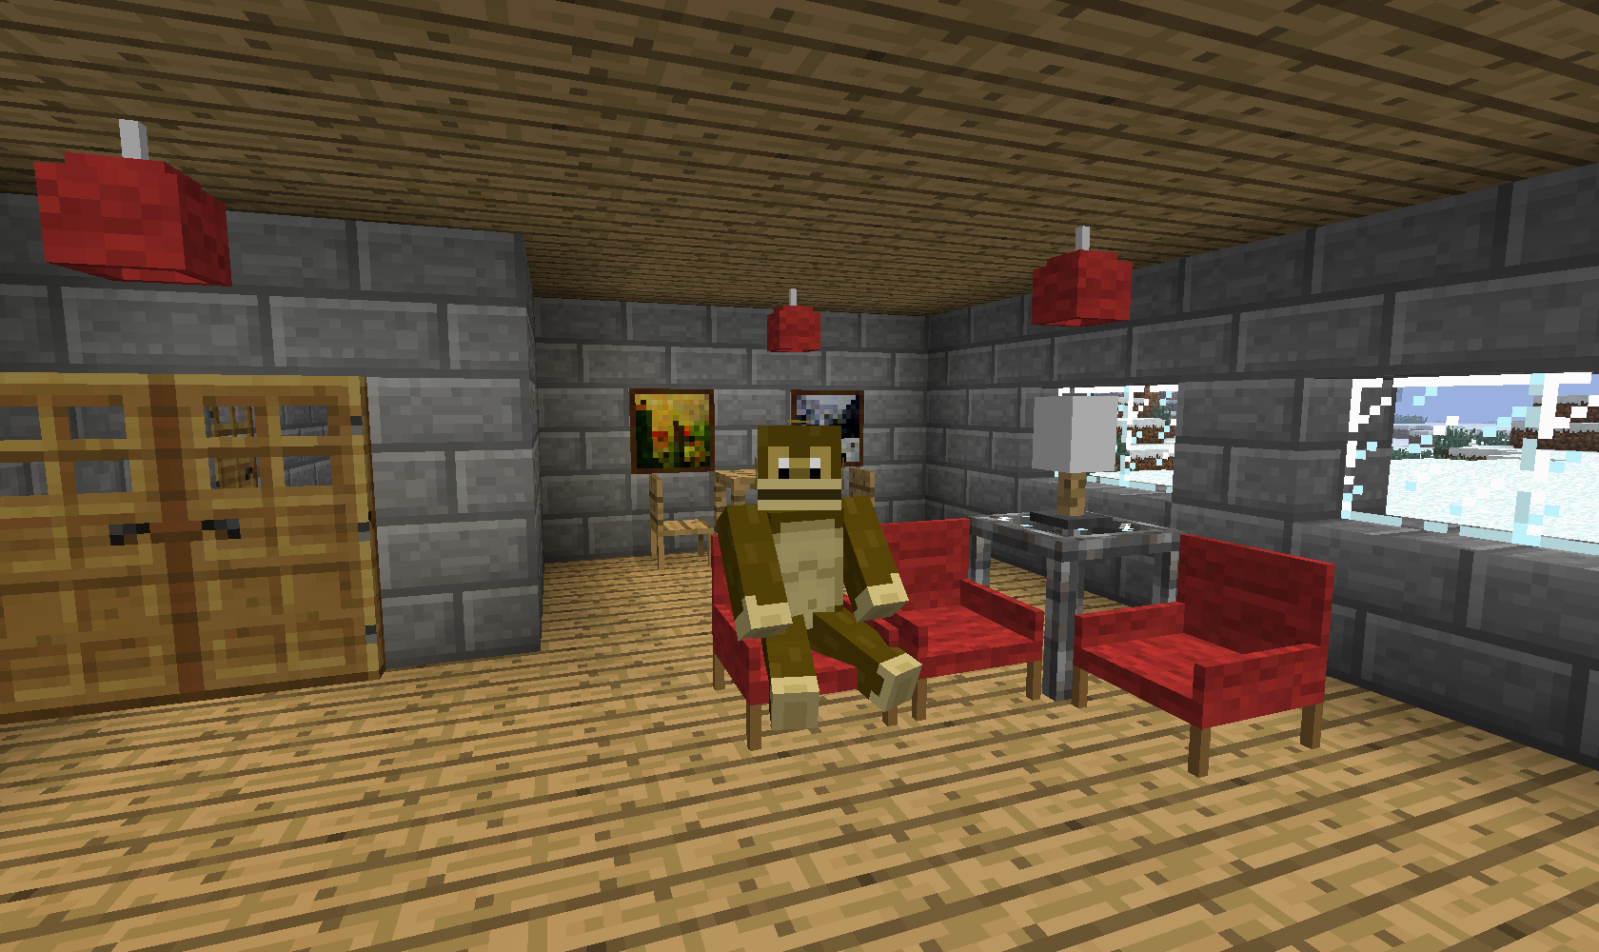 http://www.beginminecraft.com/wp-content/uploads/2013/05/Jammy-Furniture-Mod-811.png